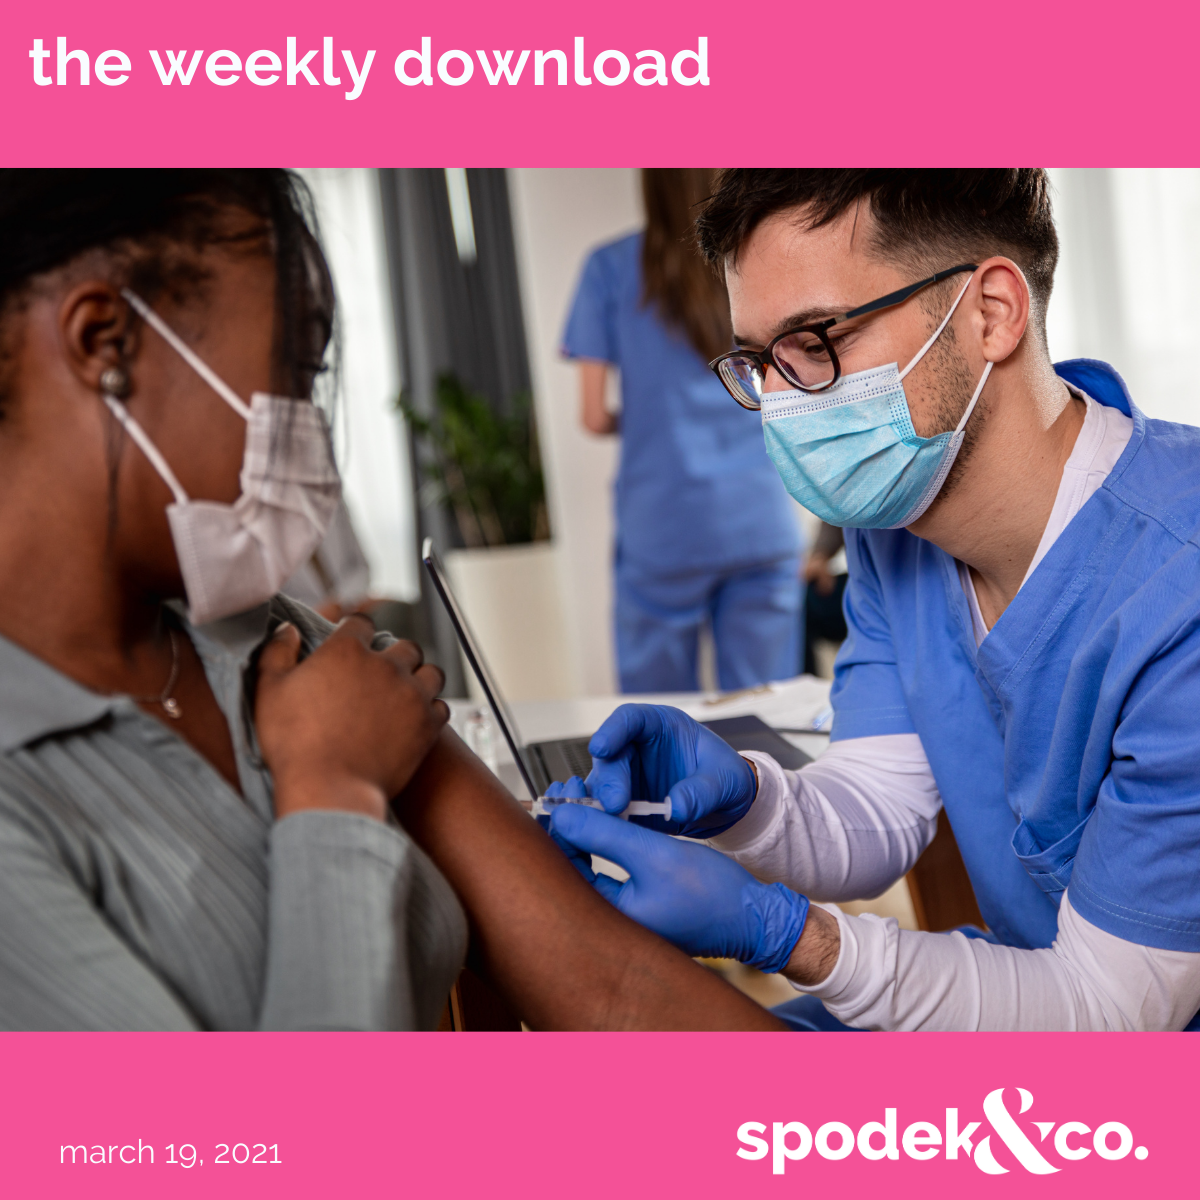 The Weekly Download – March 19, 2021